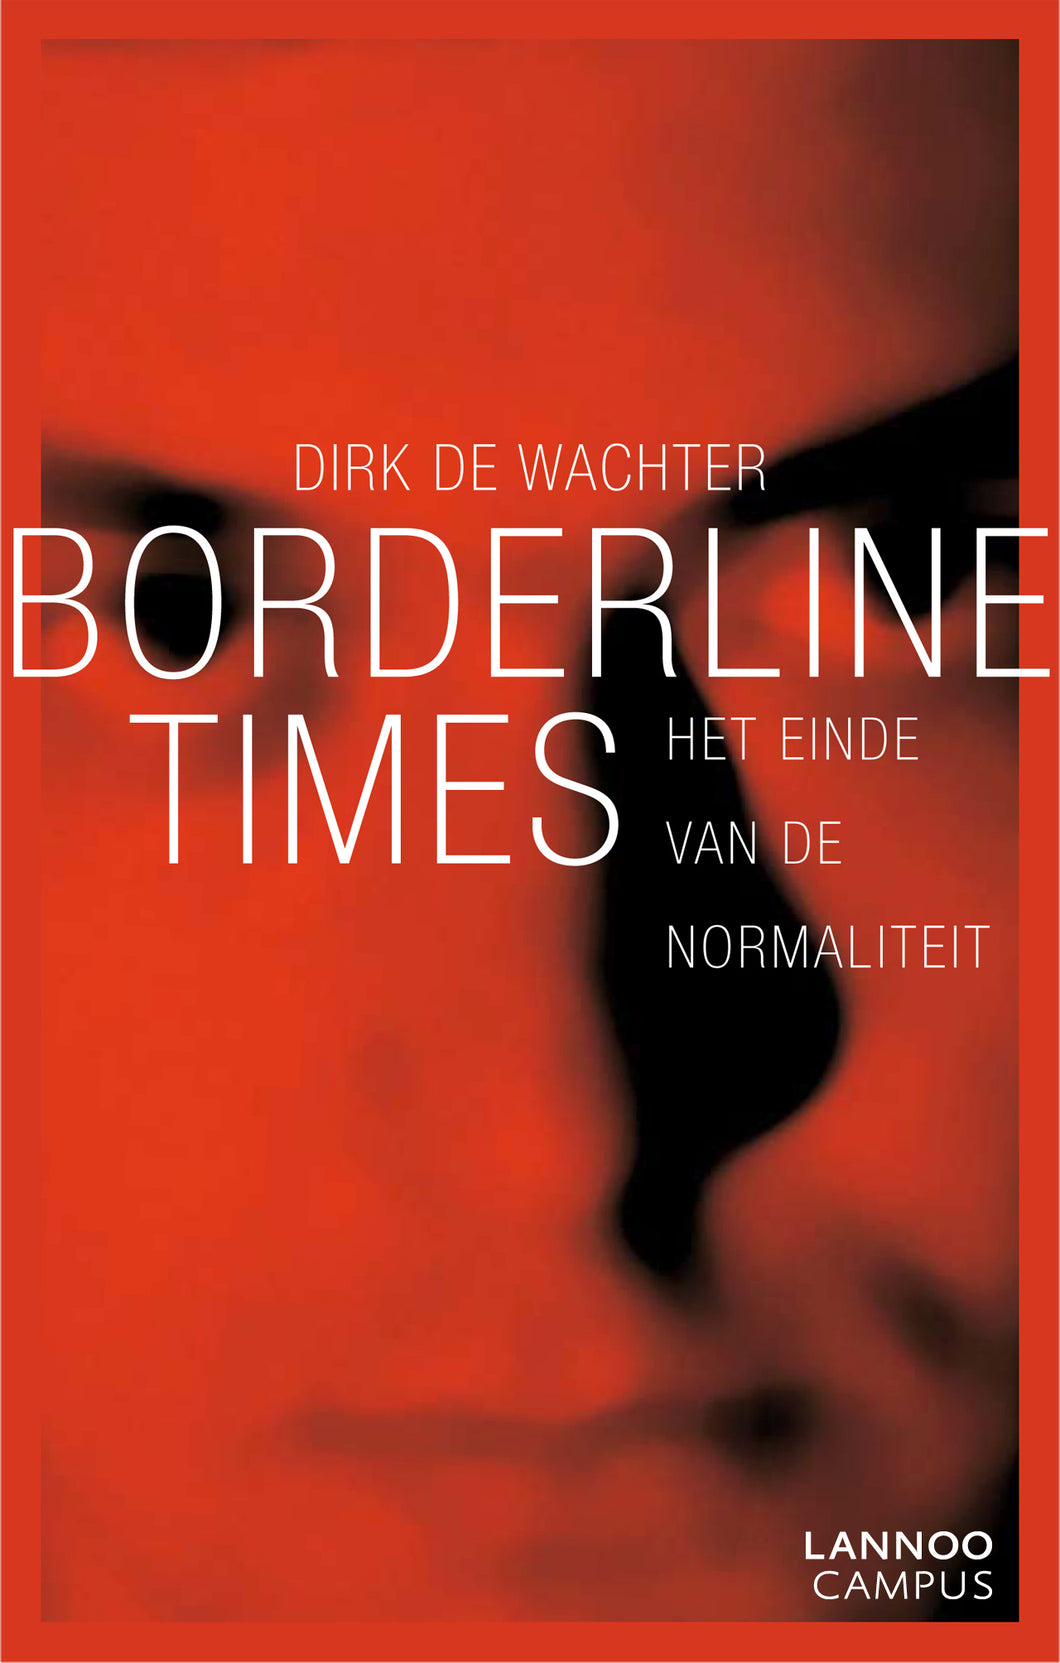 Boek 'Borderline times'